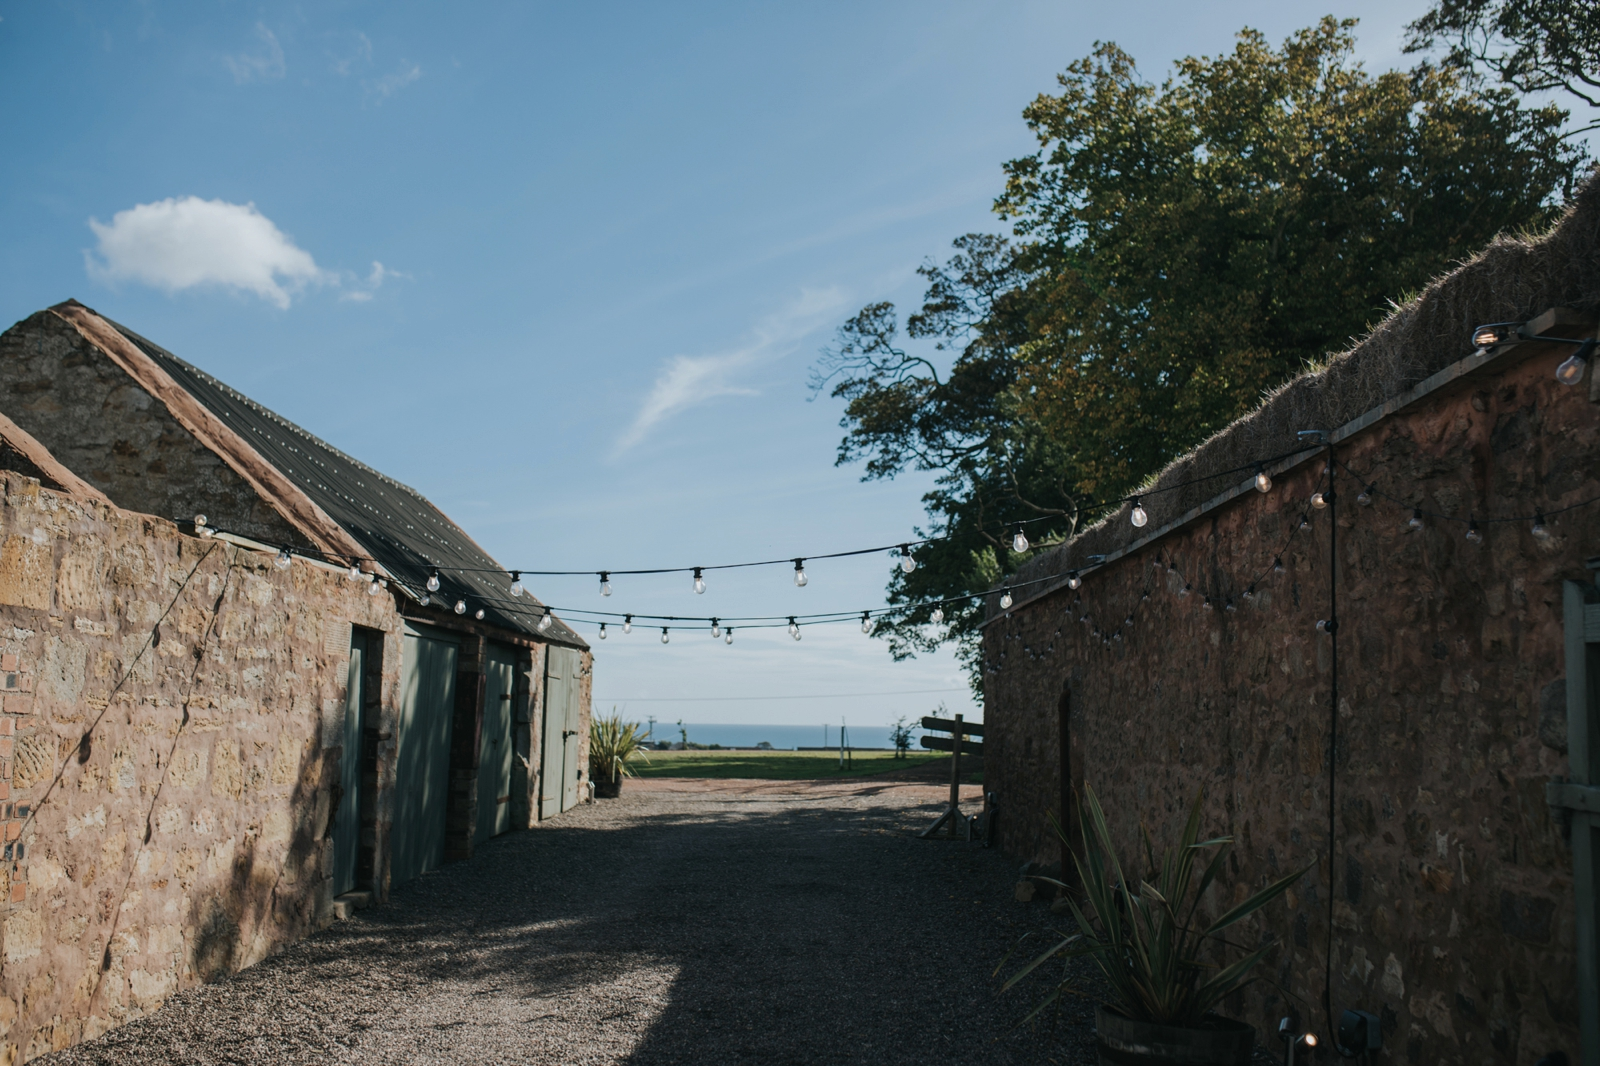 cow-shed-crail-rustic-wedding-gemma-andy-loraine-ross-photographygemma-andy-wedding-0090.jpg